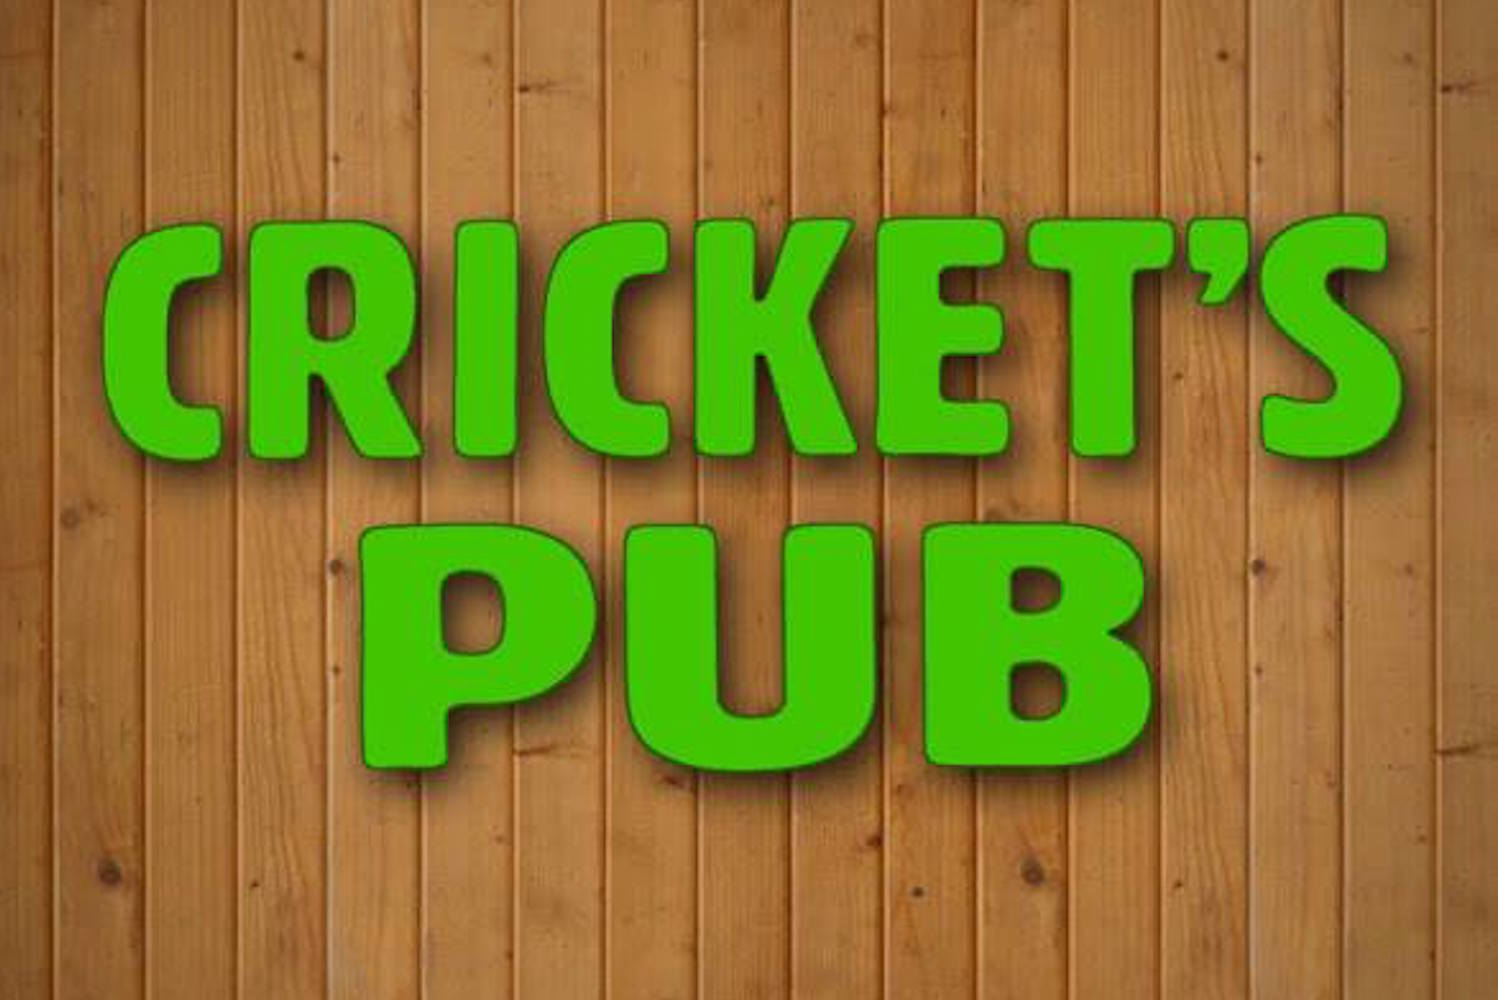 Cricket%27s%20pub